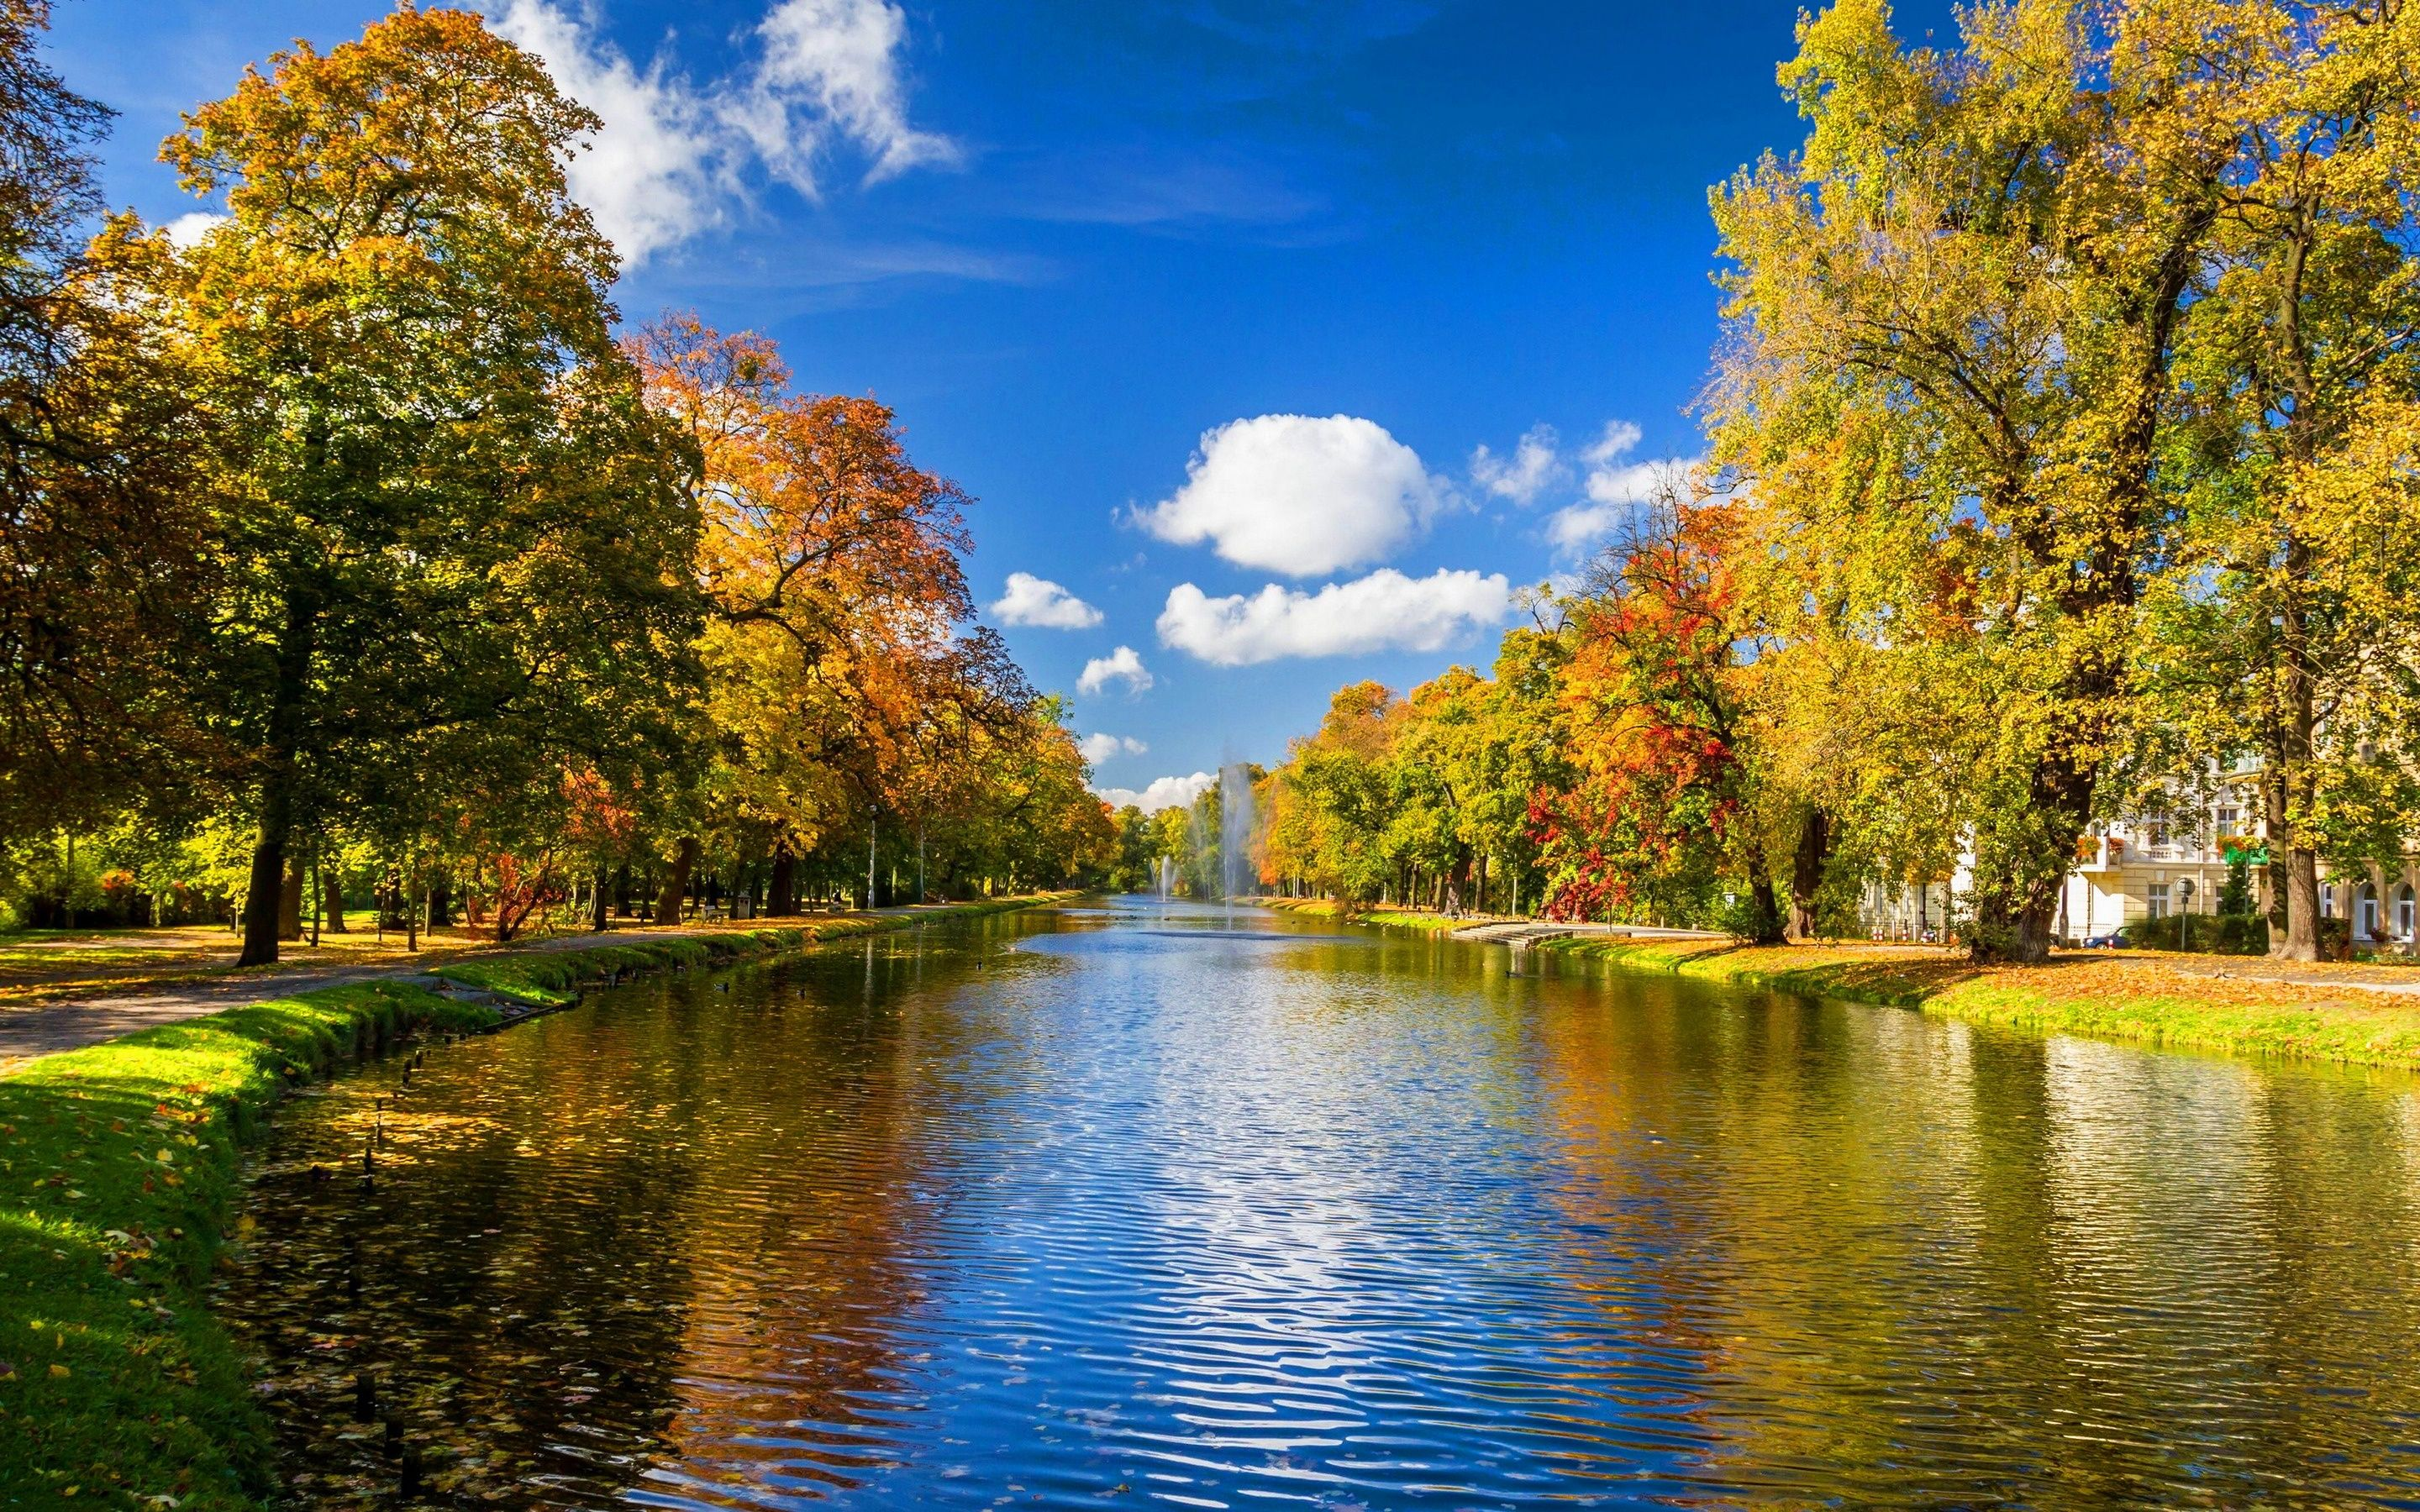 Full Hd River Wallpapers Scenery River Autumn Trees